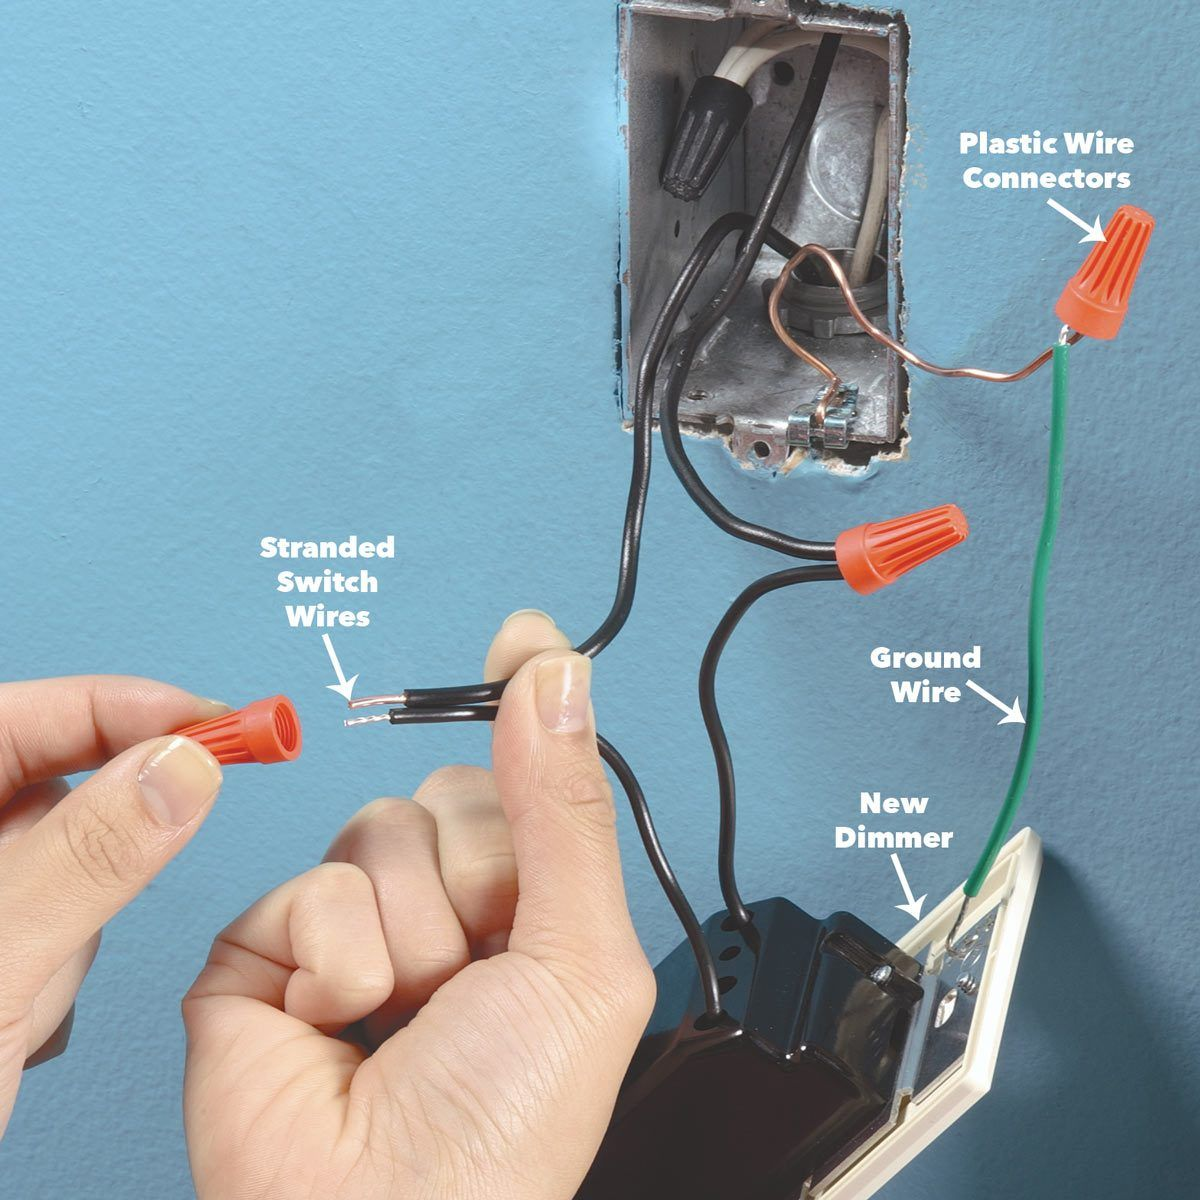 How to Install a Dimmer Switch   Dimmer light switch, Light switch ...